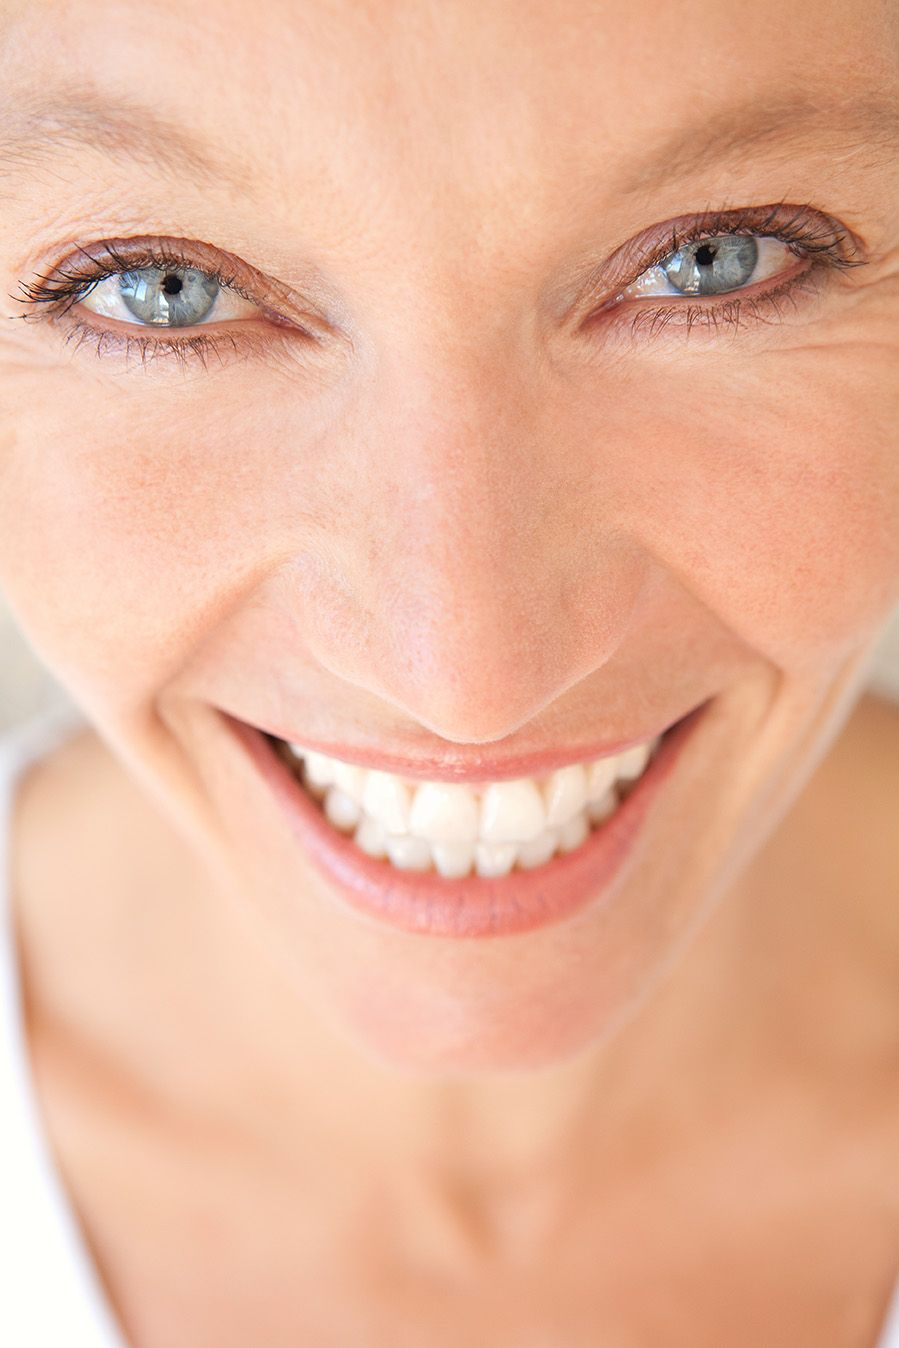 Woman with a well aligned smile